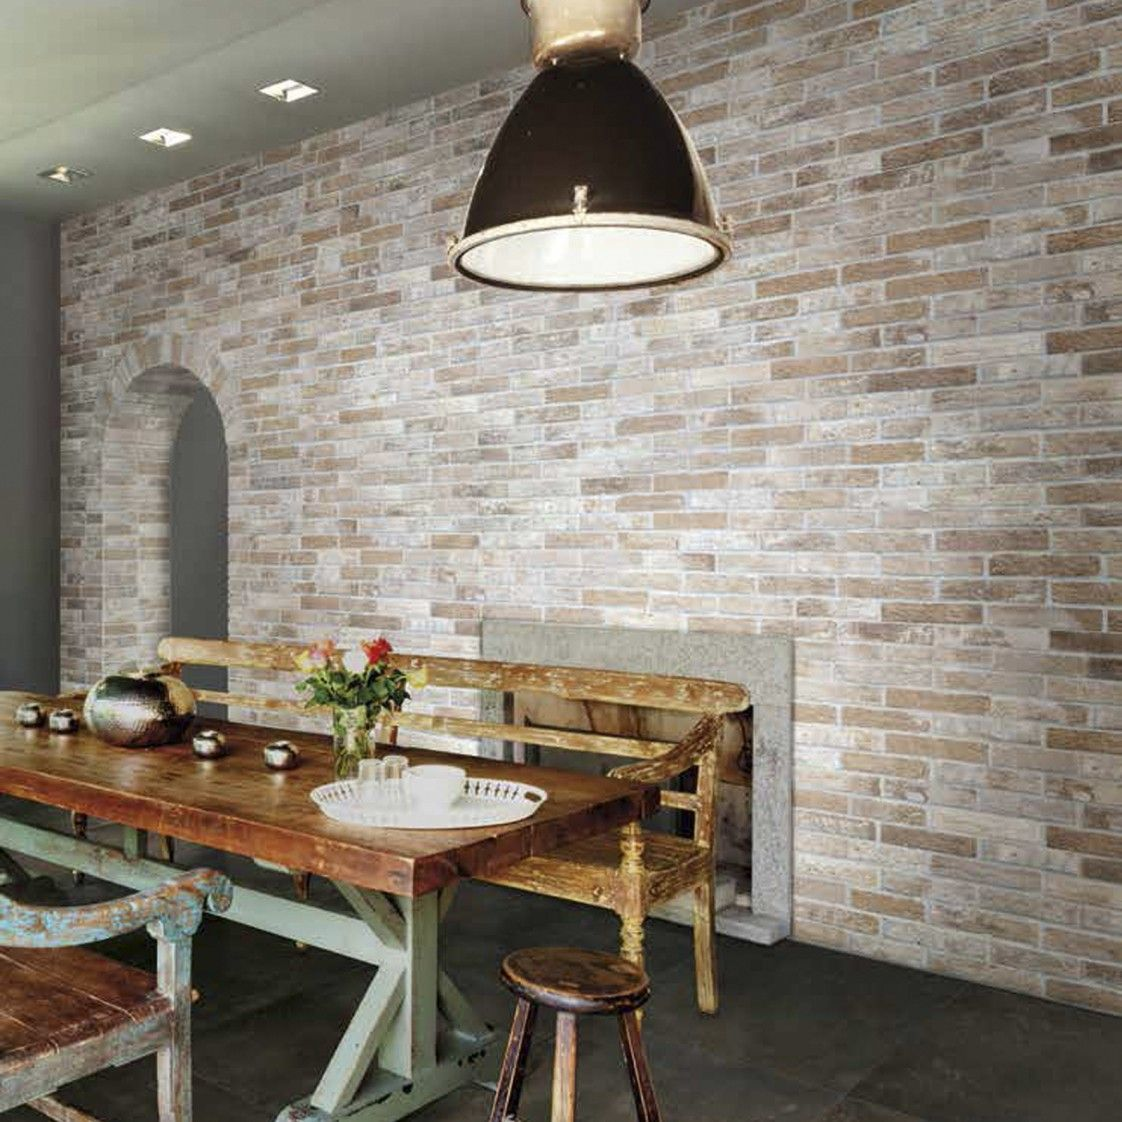 Kitchen Tiles Singapore ceramica rondine brick generation tiles in singapore | hafary